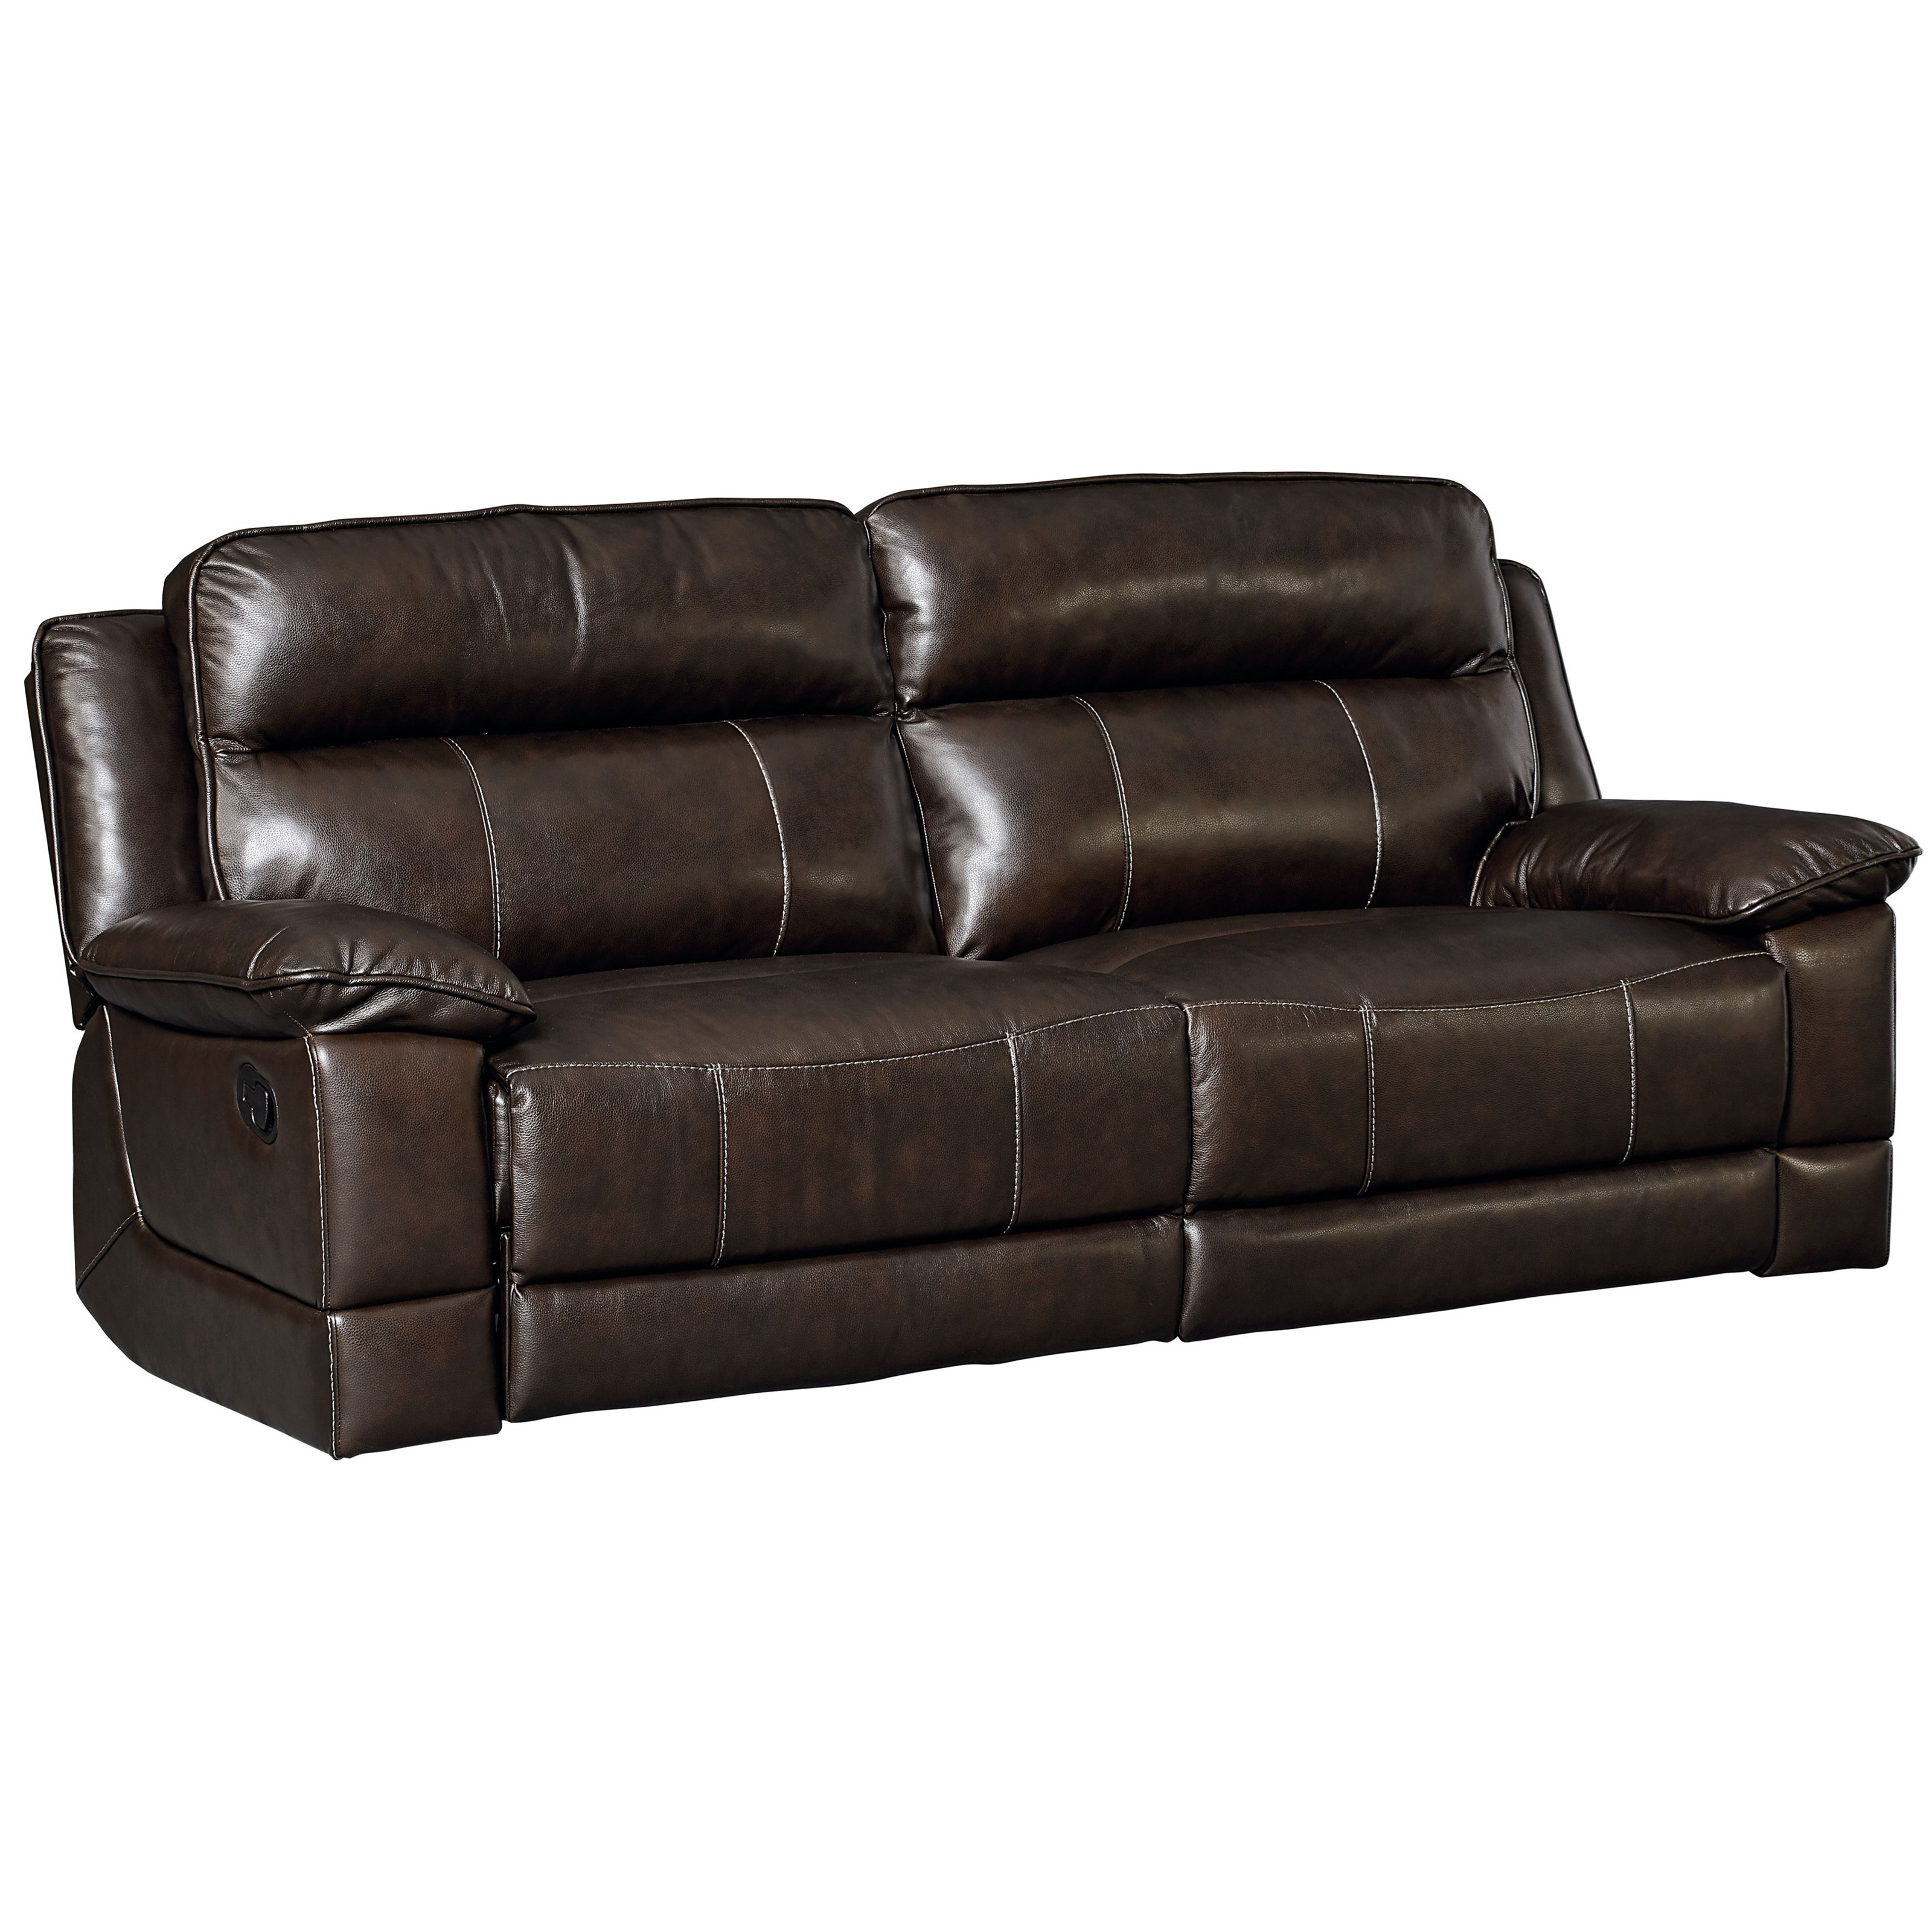 Standard Furniture Sequoia Reclining Living Room Group